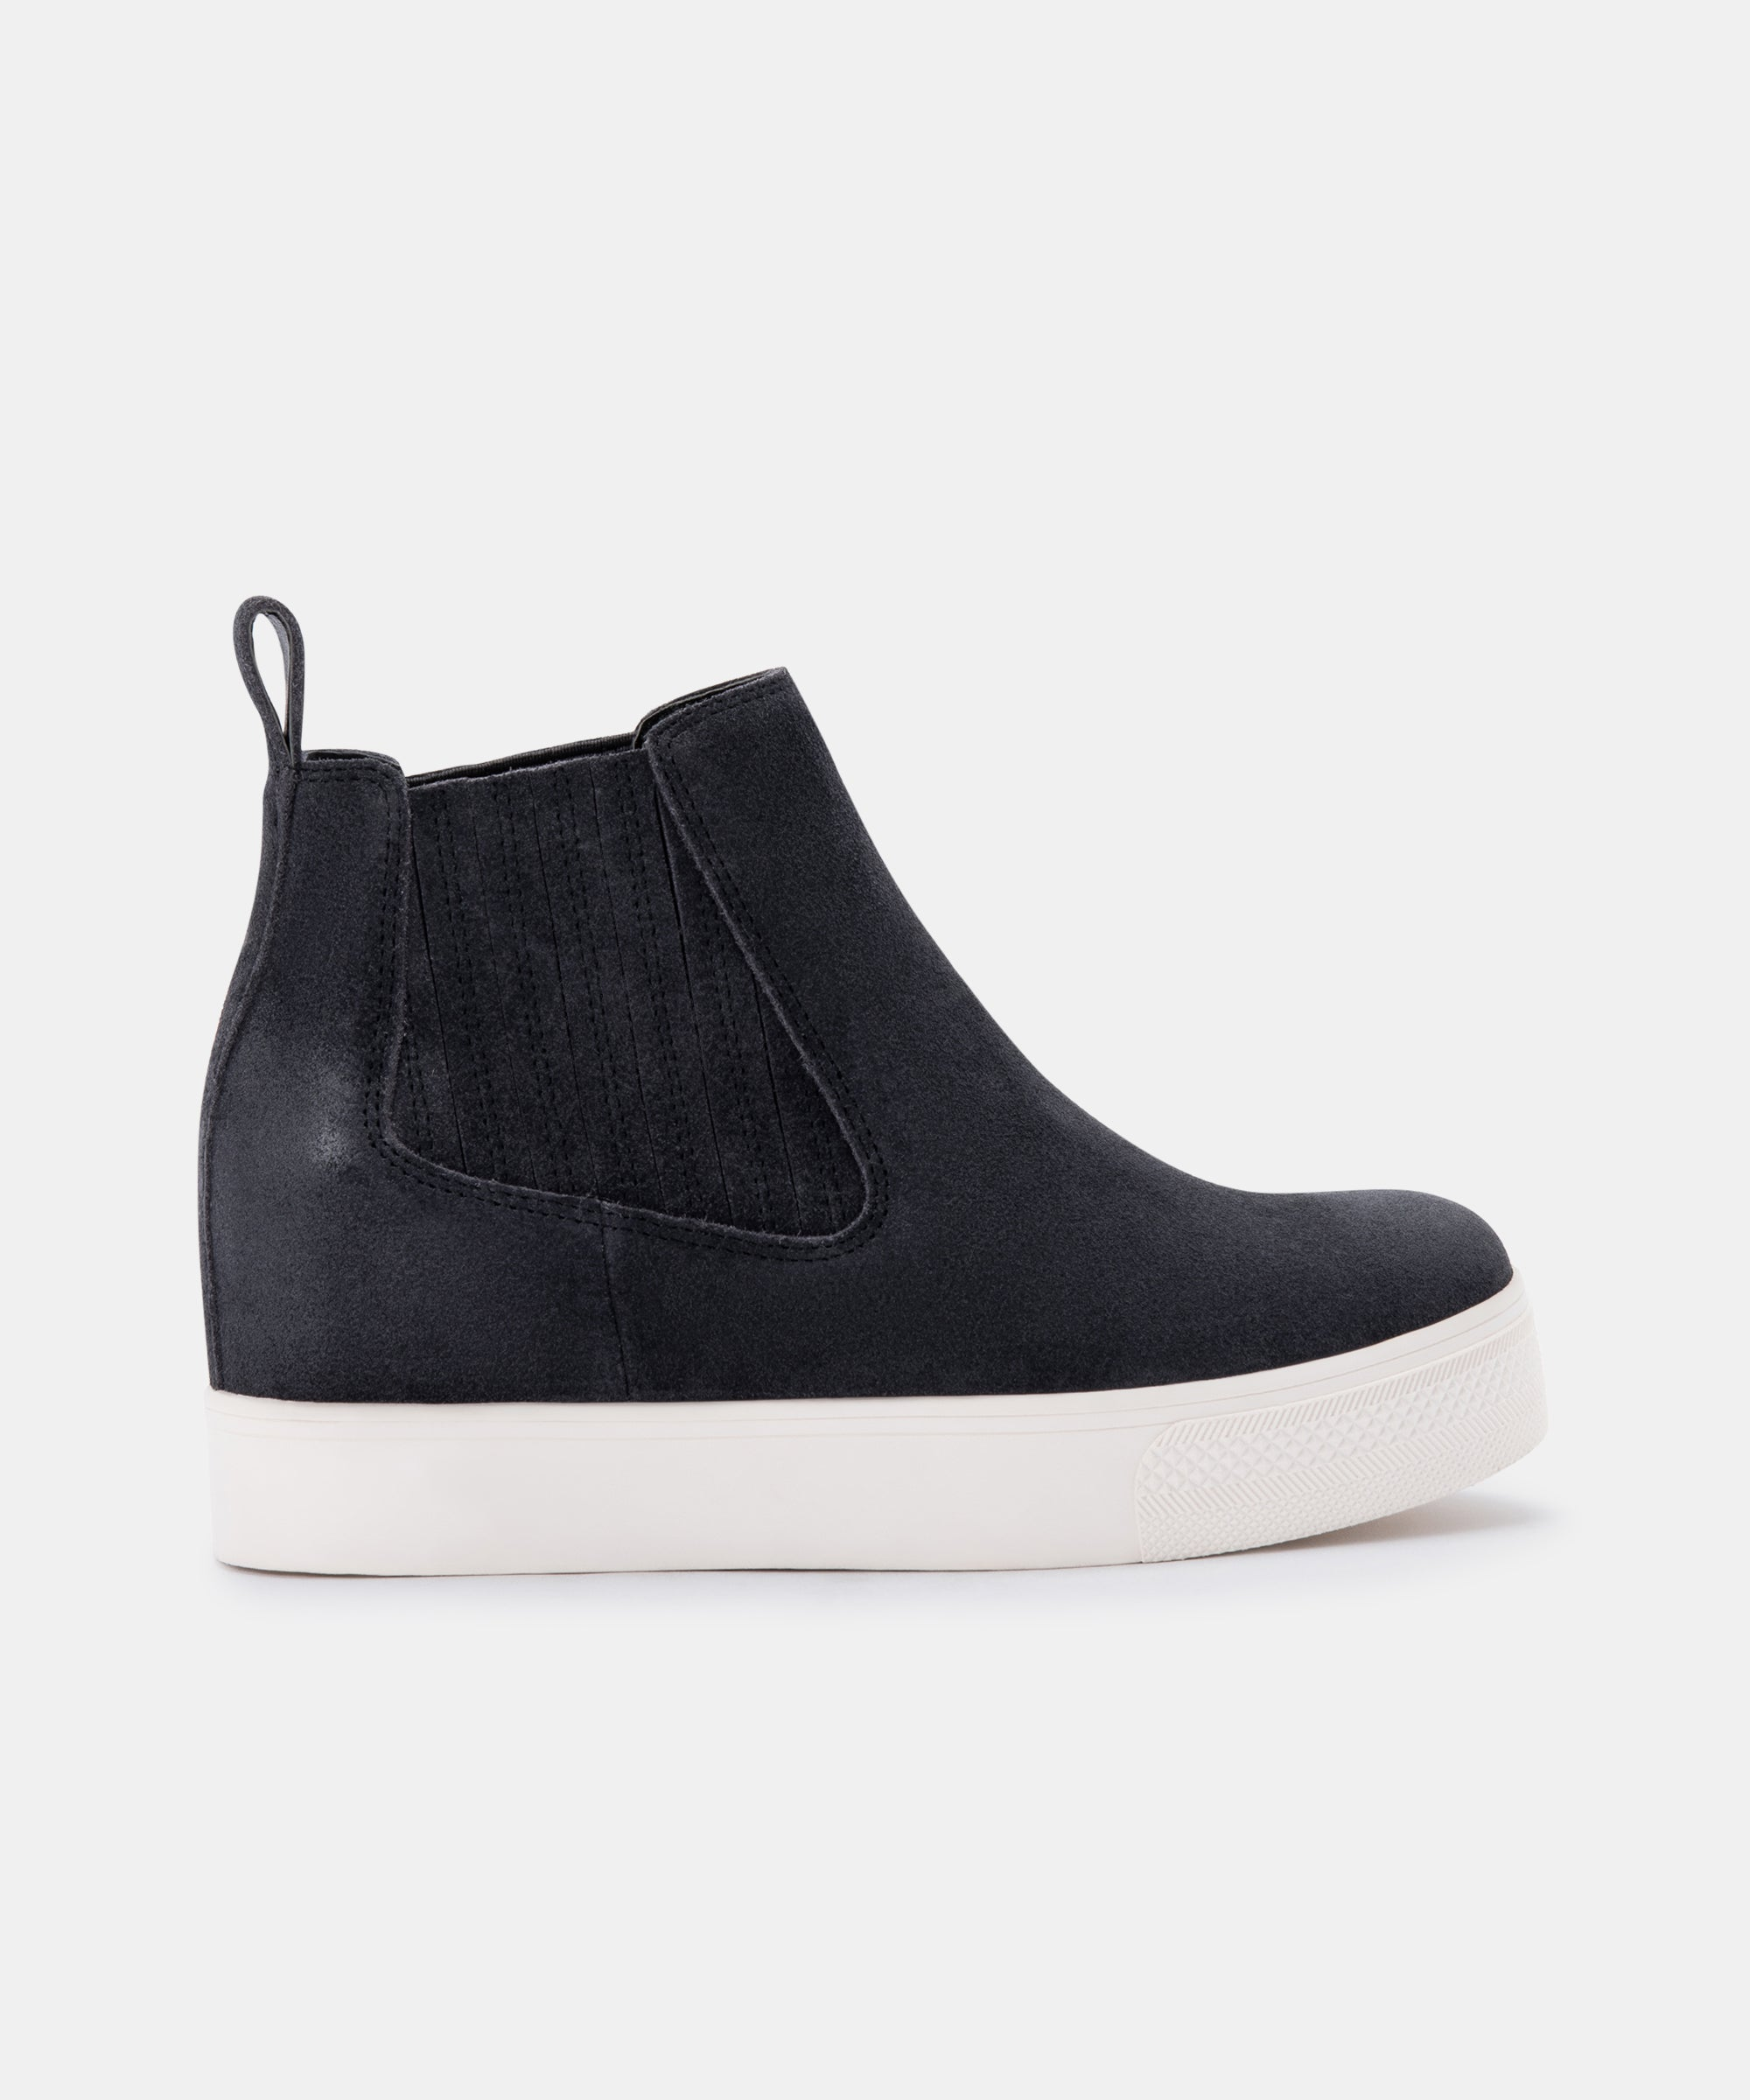 WYND SNEAKERS ANTHRACITE SUEDE